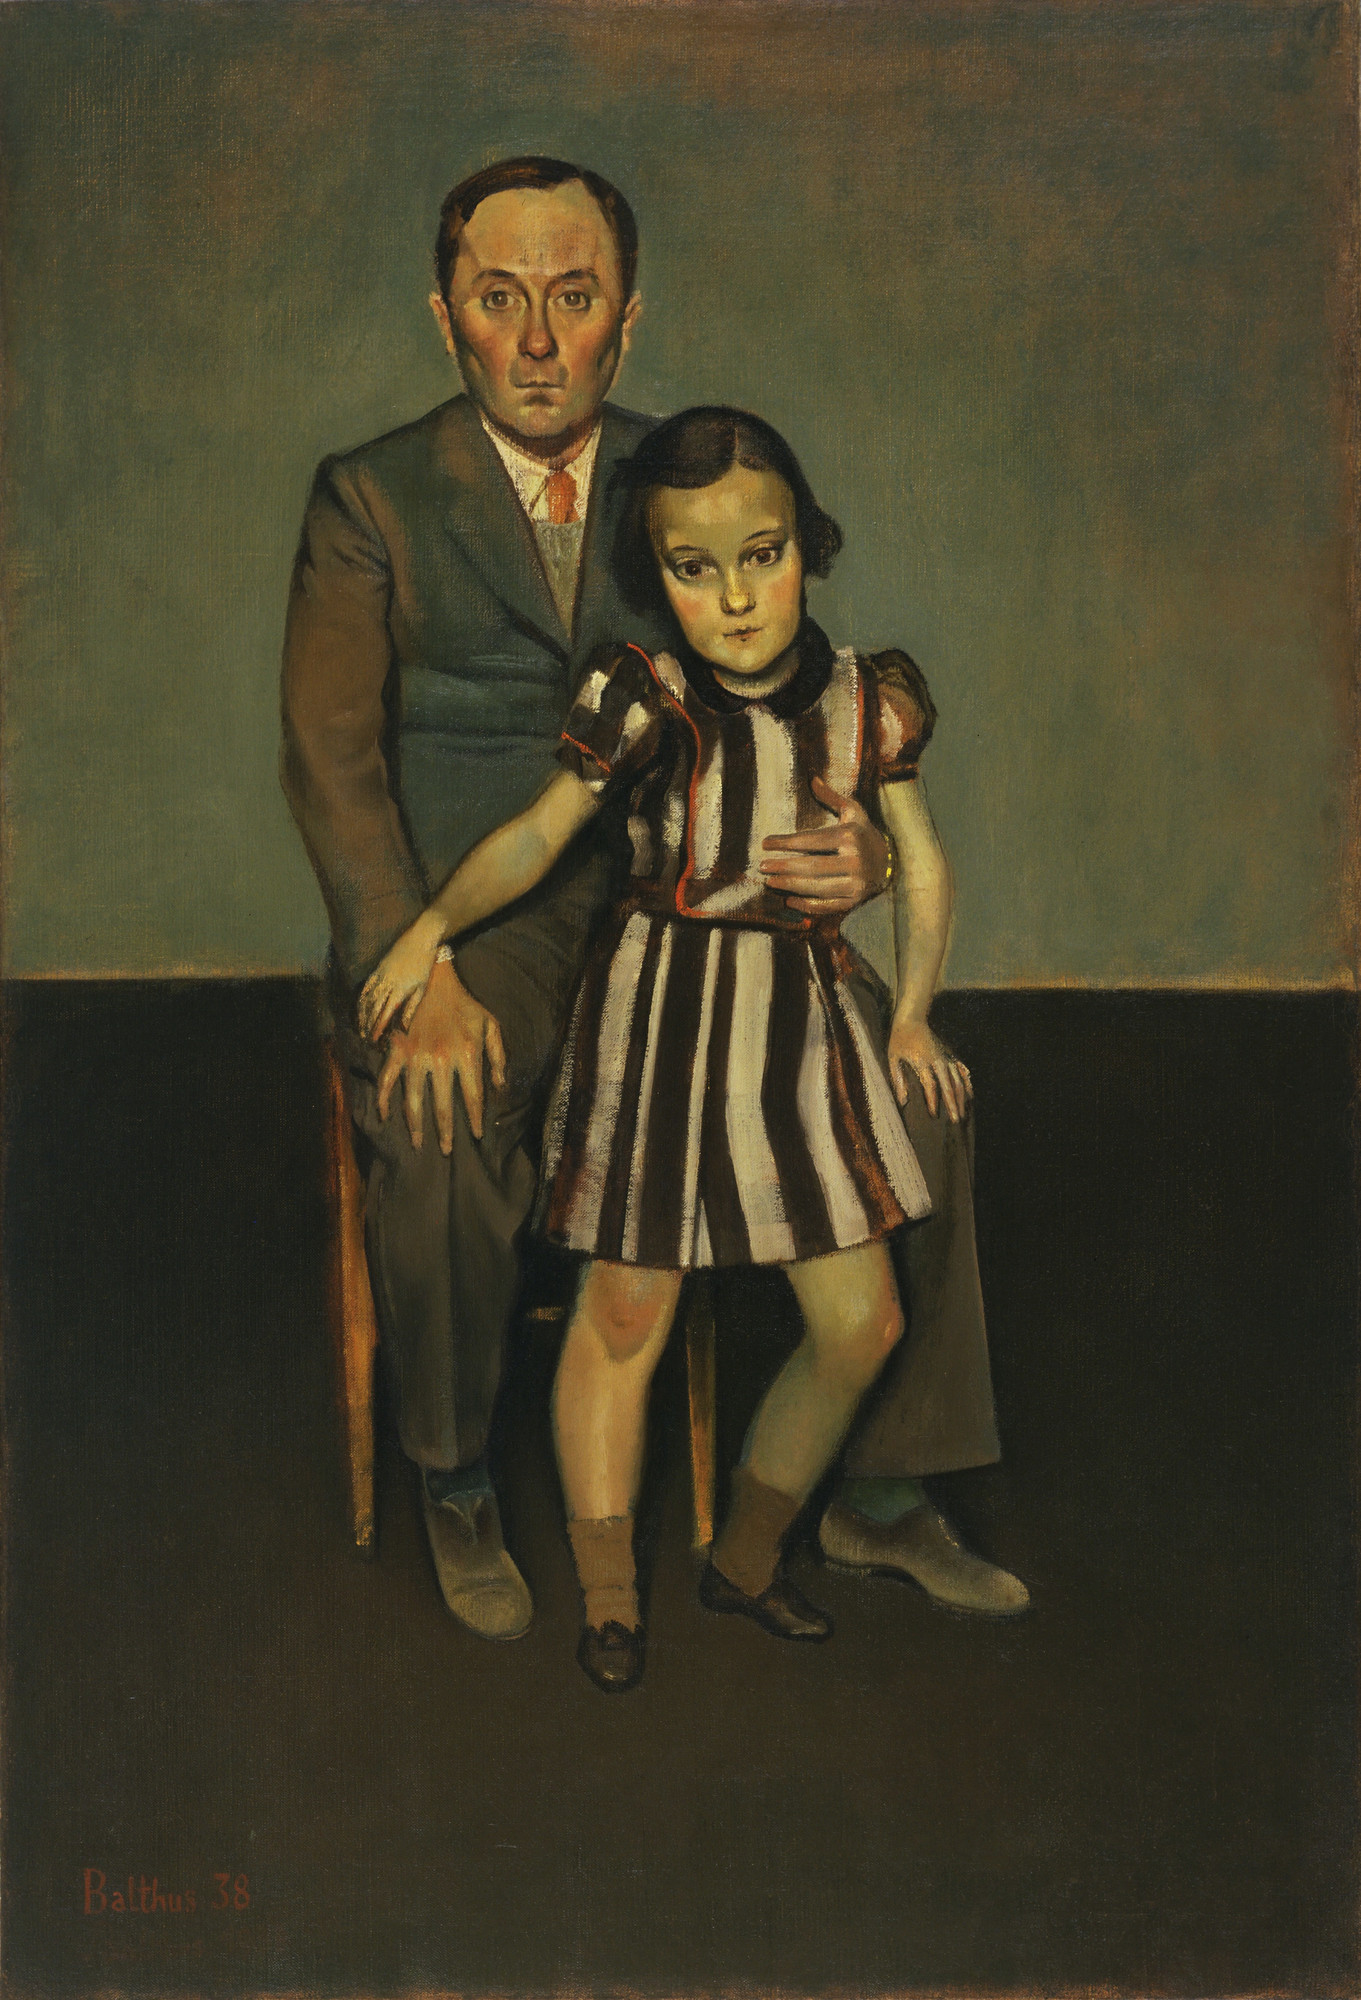 Balthus (Baltusz Klossowski de Rola). Joan Miró and His Daughter Dolores. October 1937-January 1938